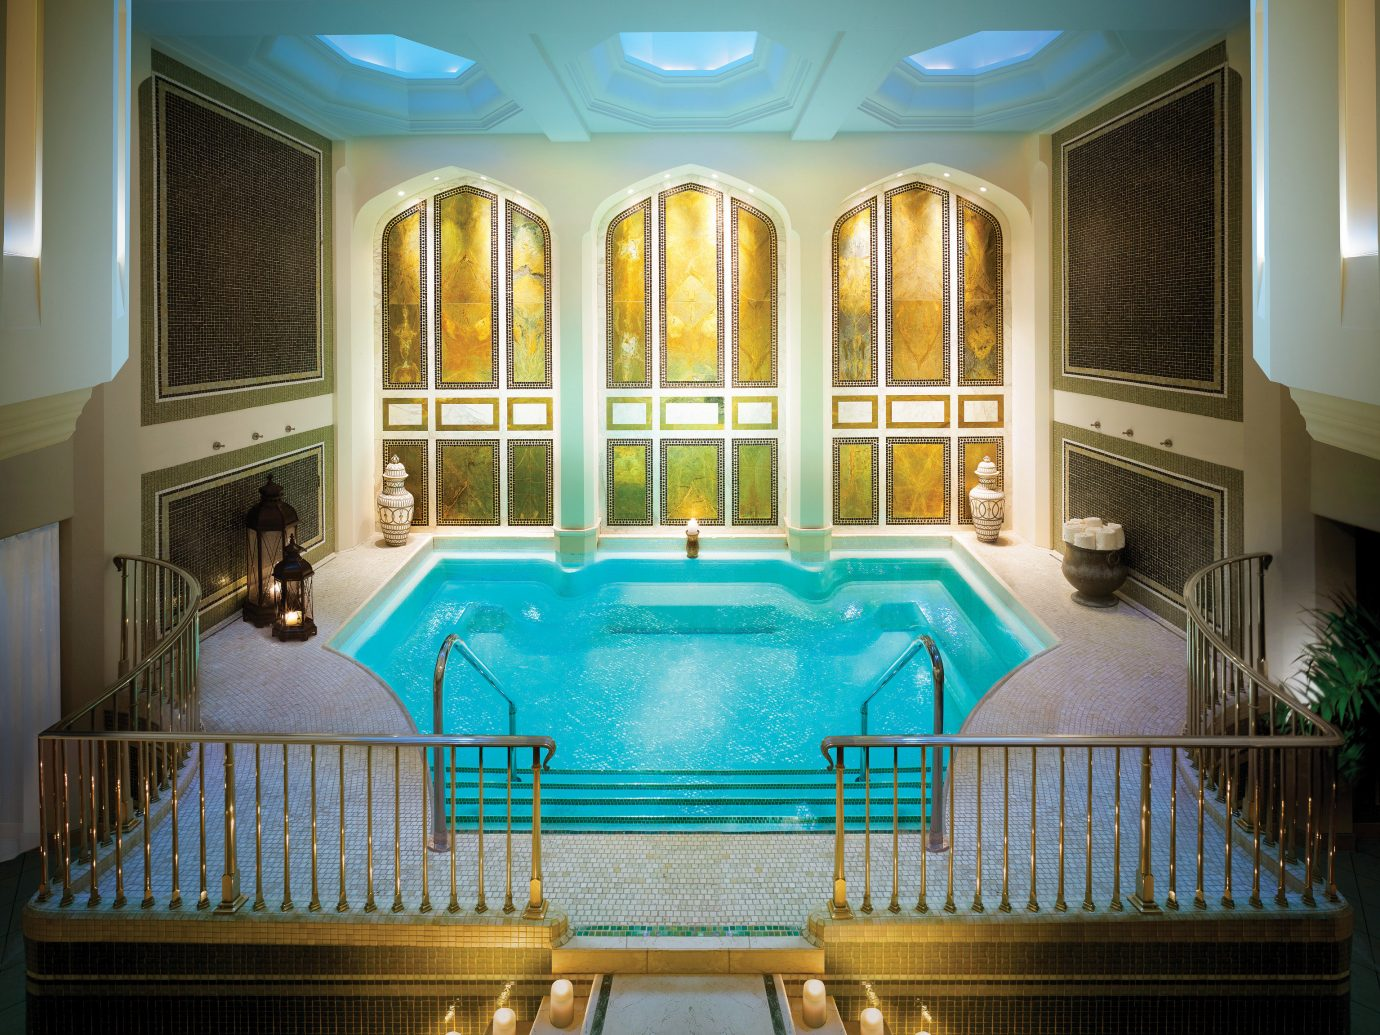 Health + Wellness Hotels Spa Retreats swimming pool blue property estate room mansion ceiling Resort home green interior design palace Lobby